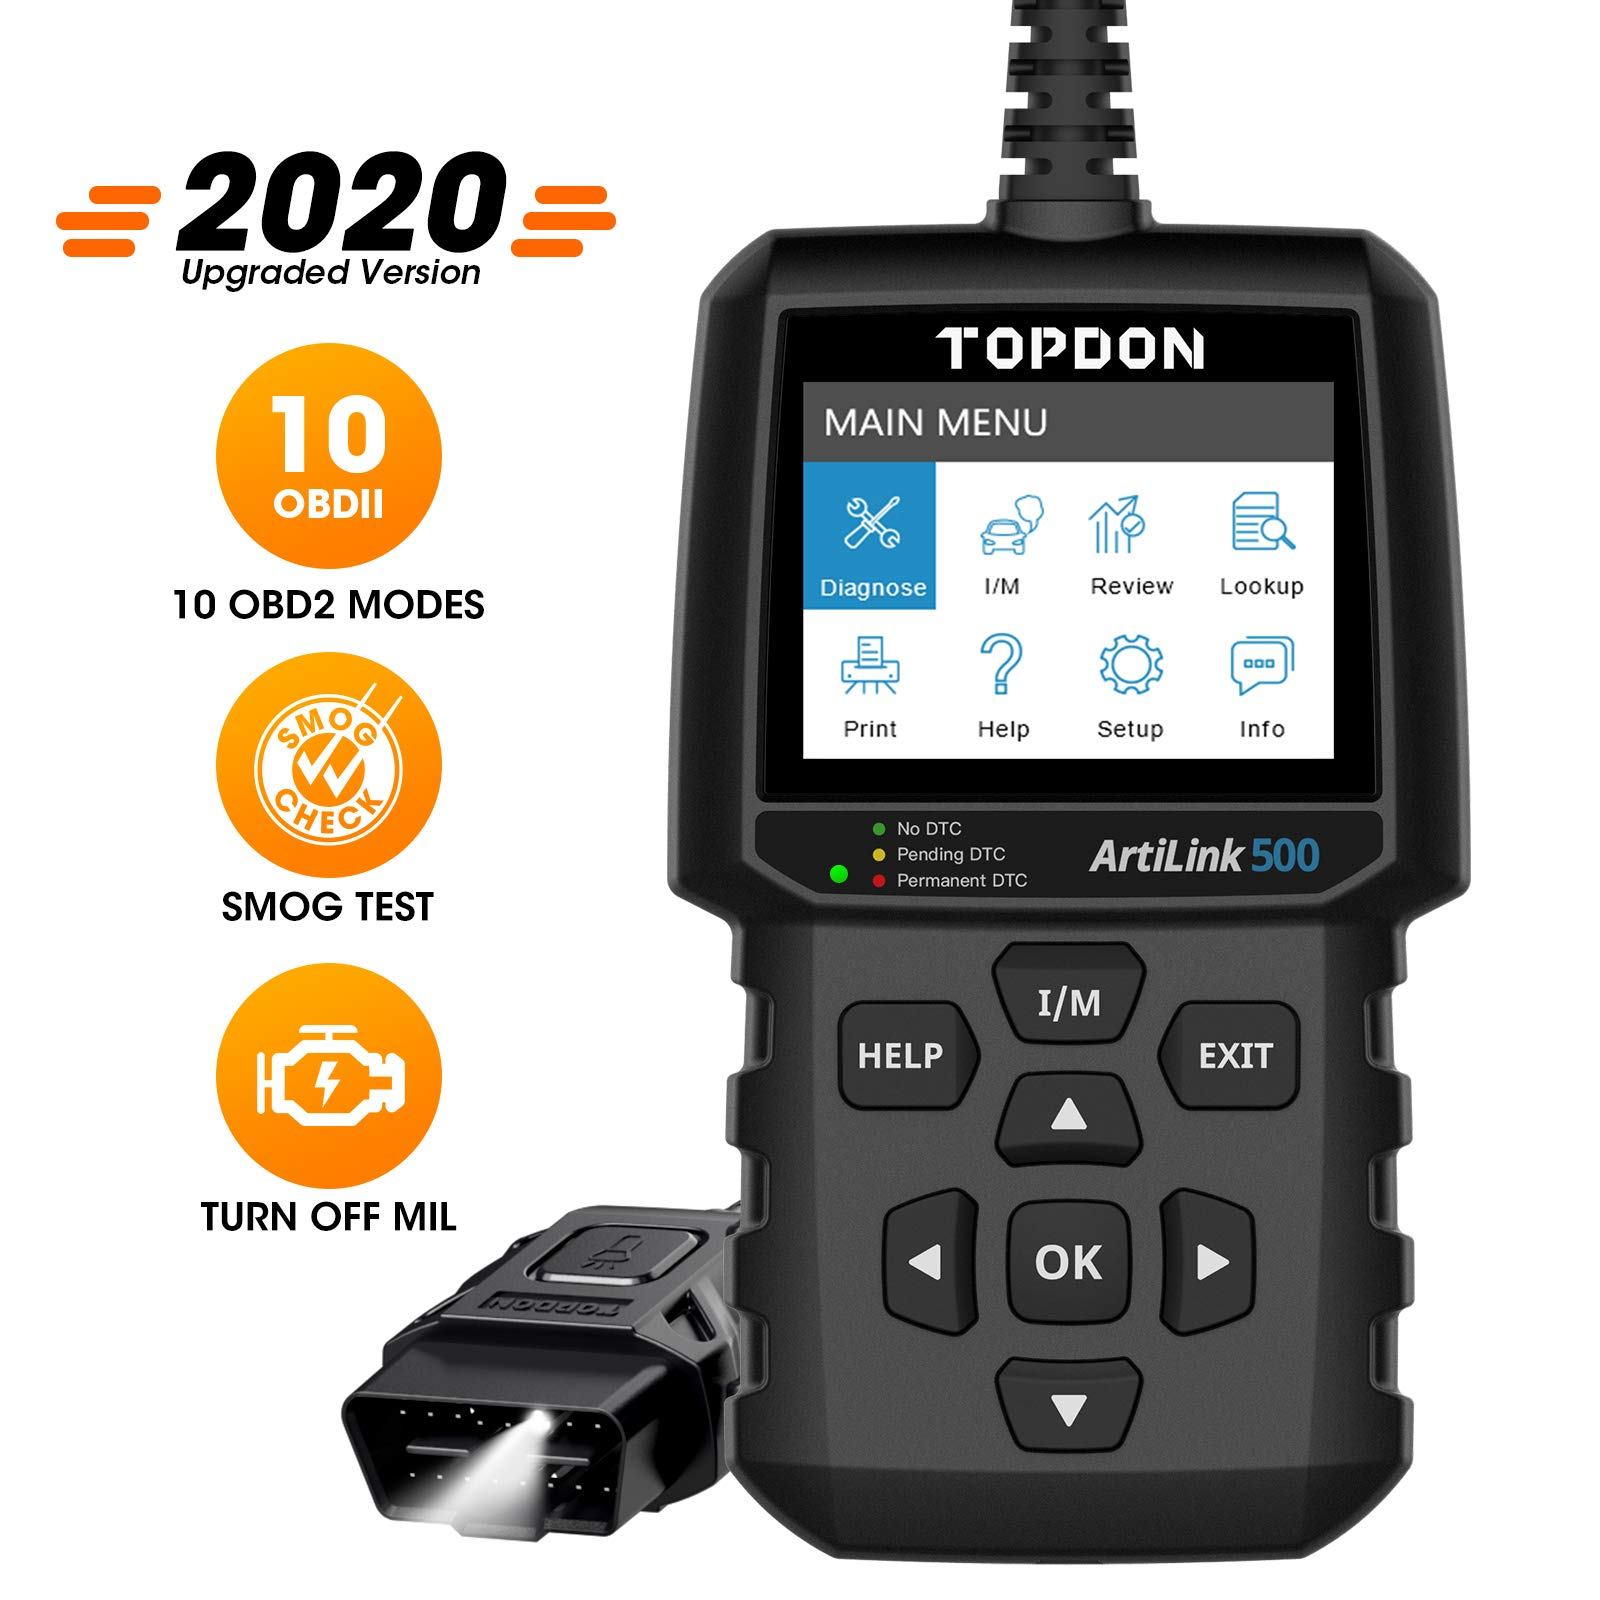 TT TOPDON OBD2 Scanner Code Reader AL500 with All OBD2 Functions Read Codes, Clear Codes, Turn Off Check Engine Light, Pass Smog Check